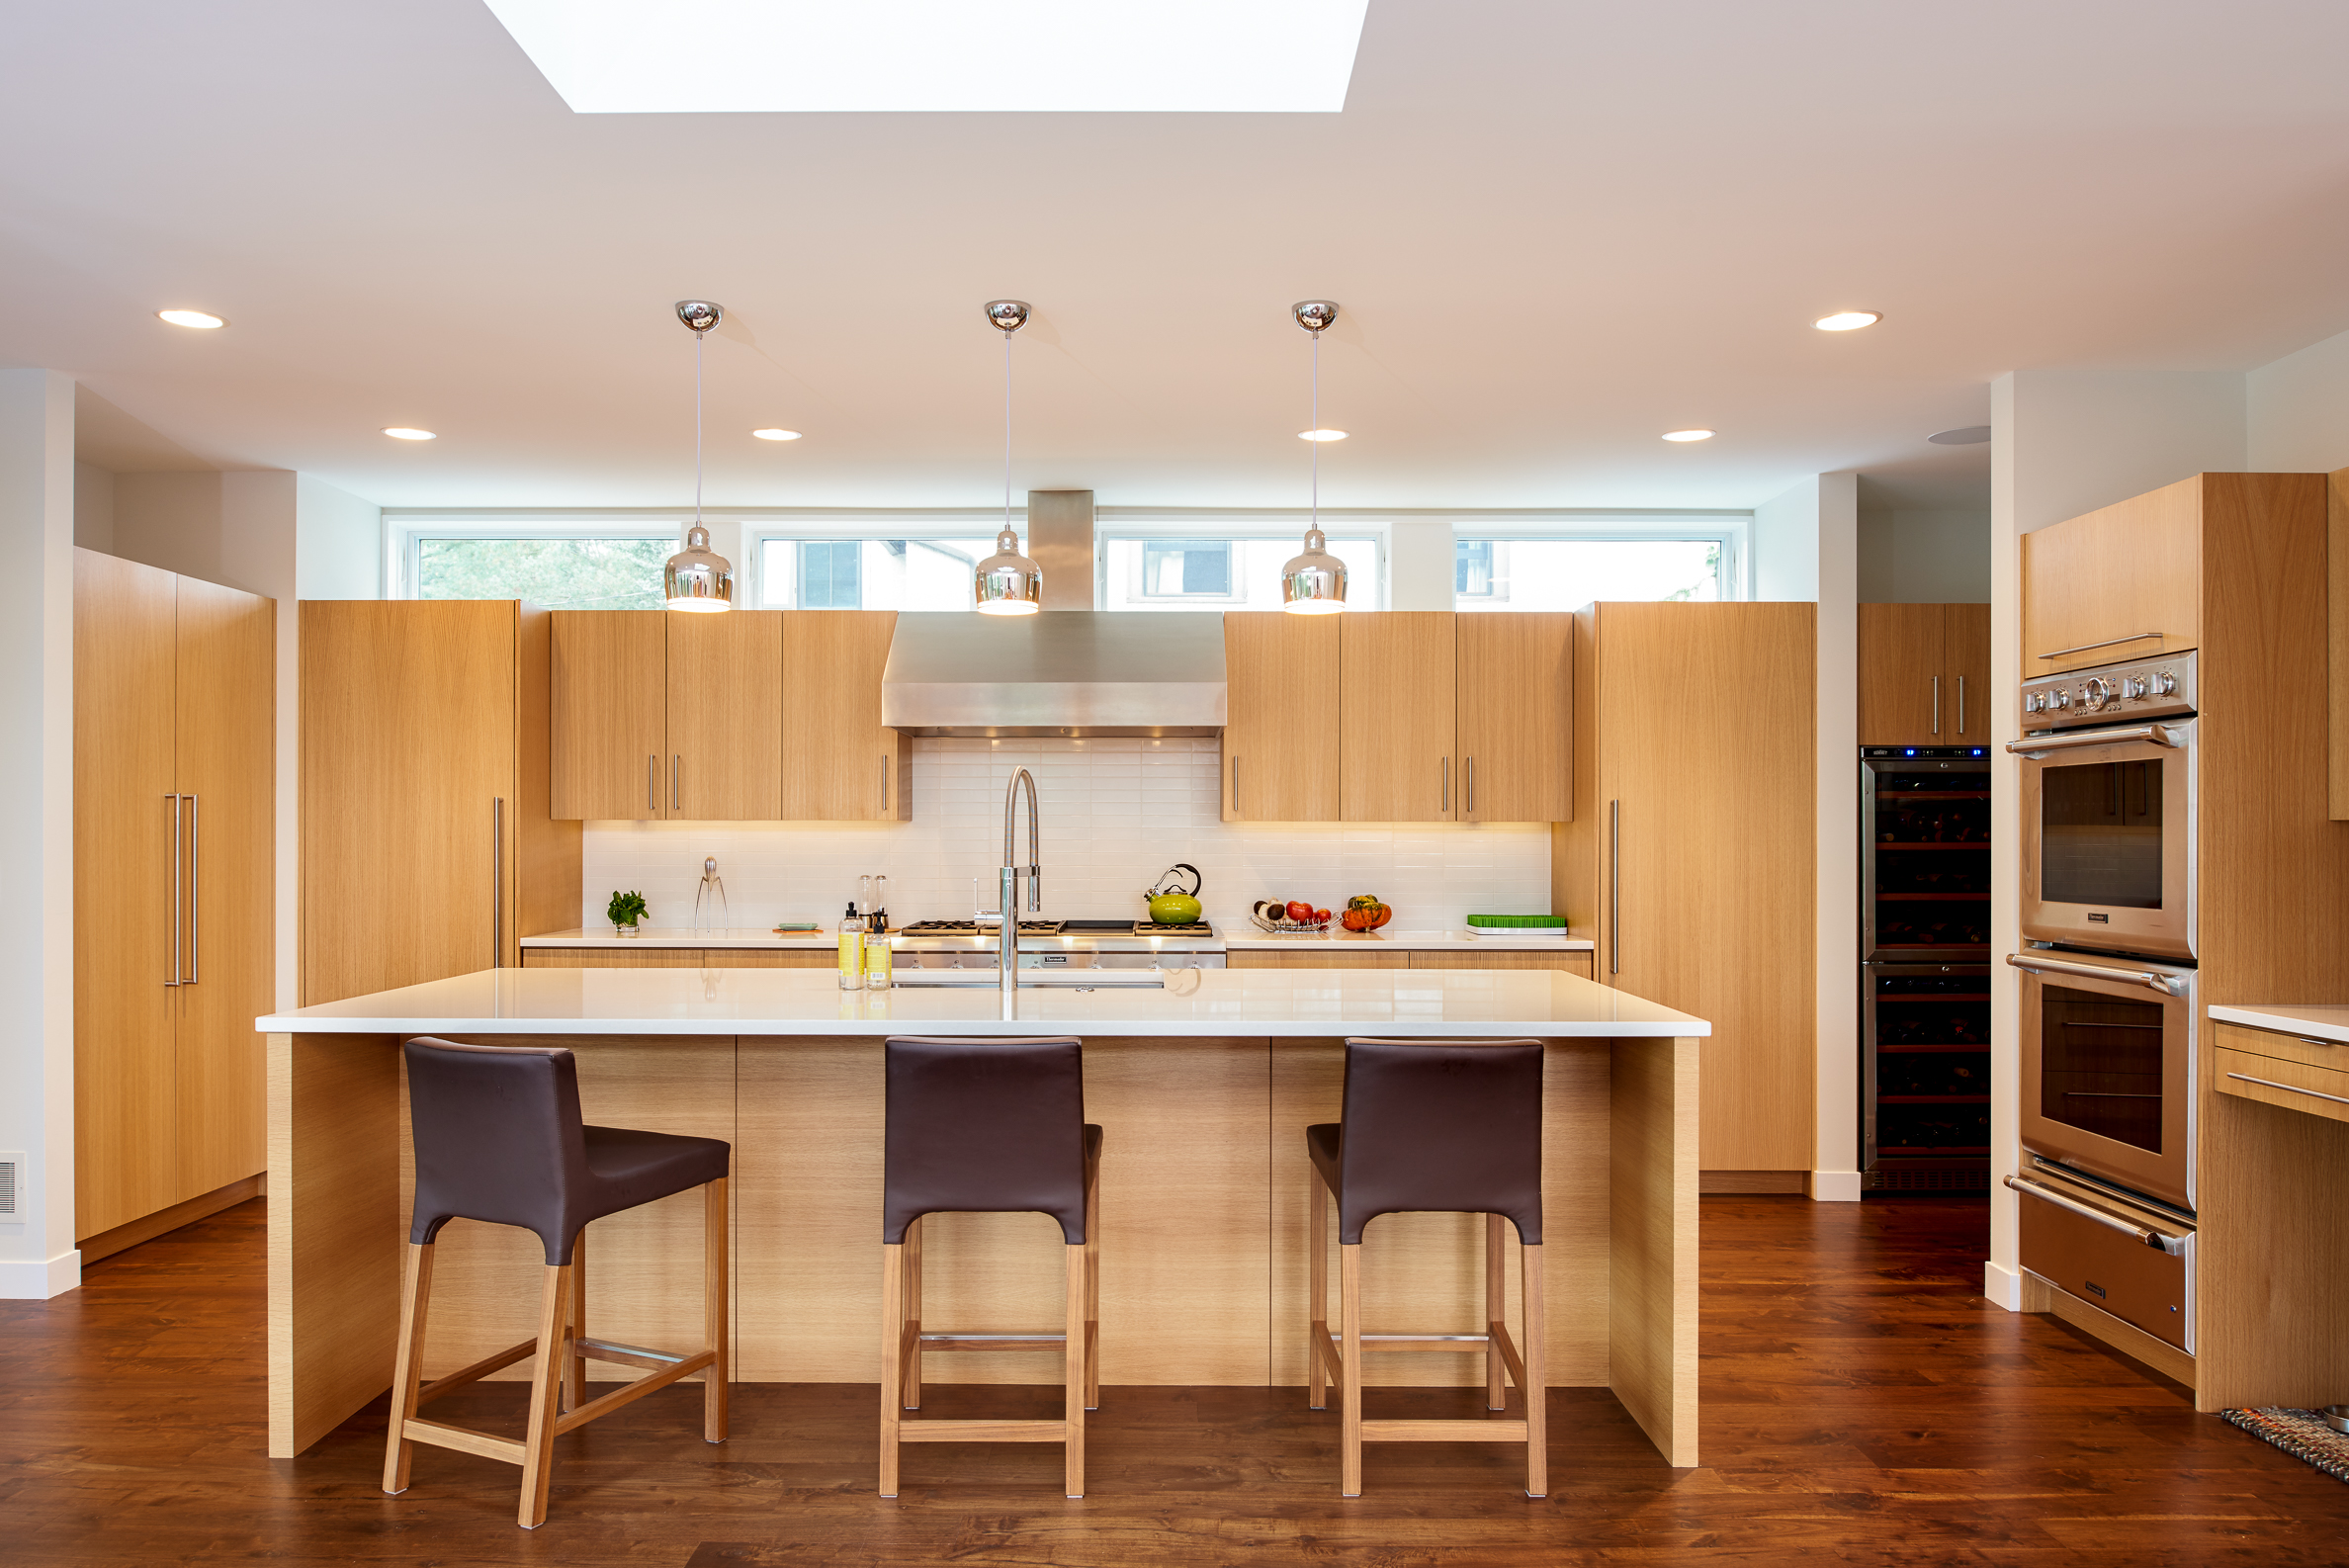 Modern midcentury kitchen with clerestory windows and skylight